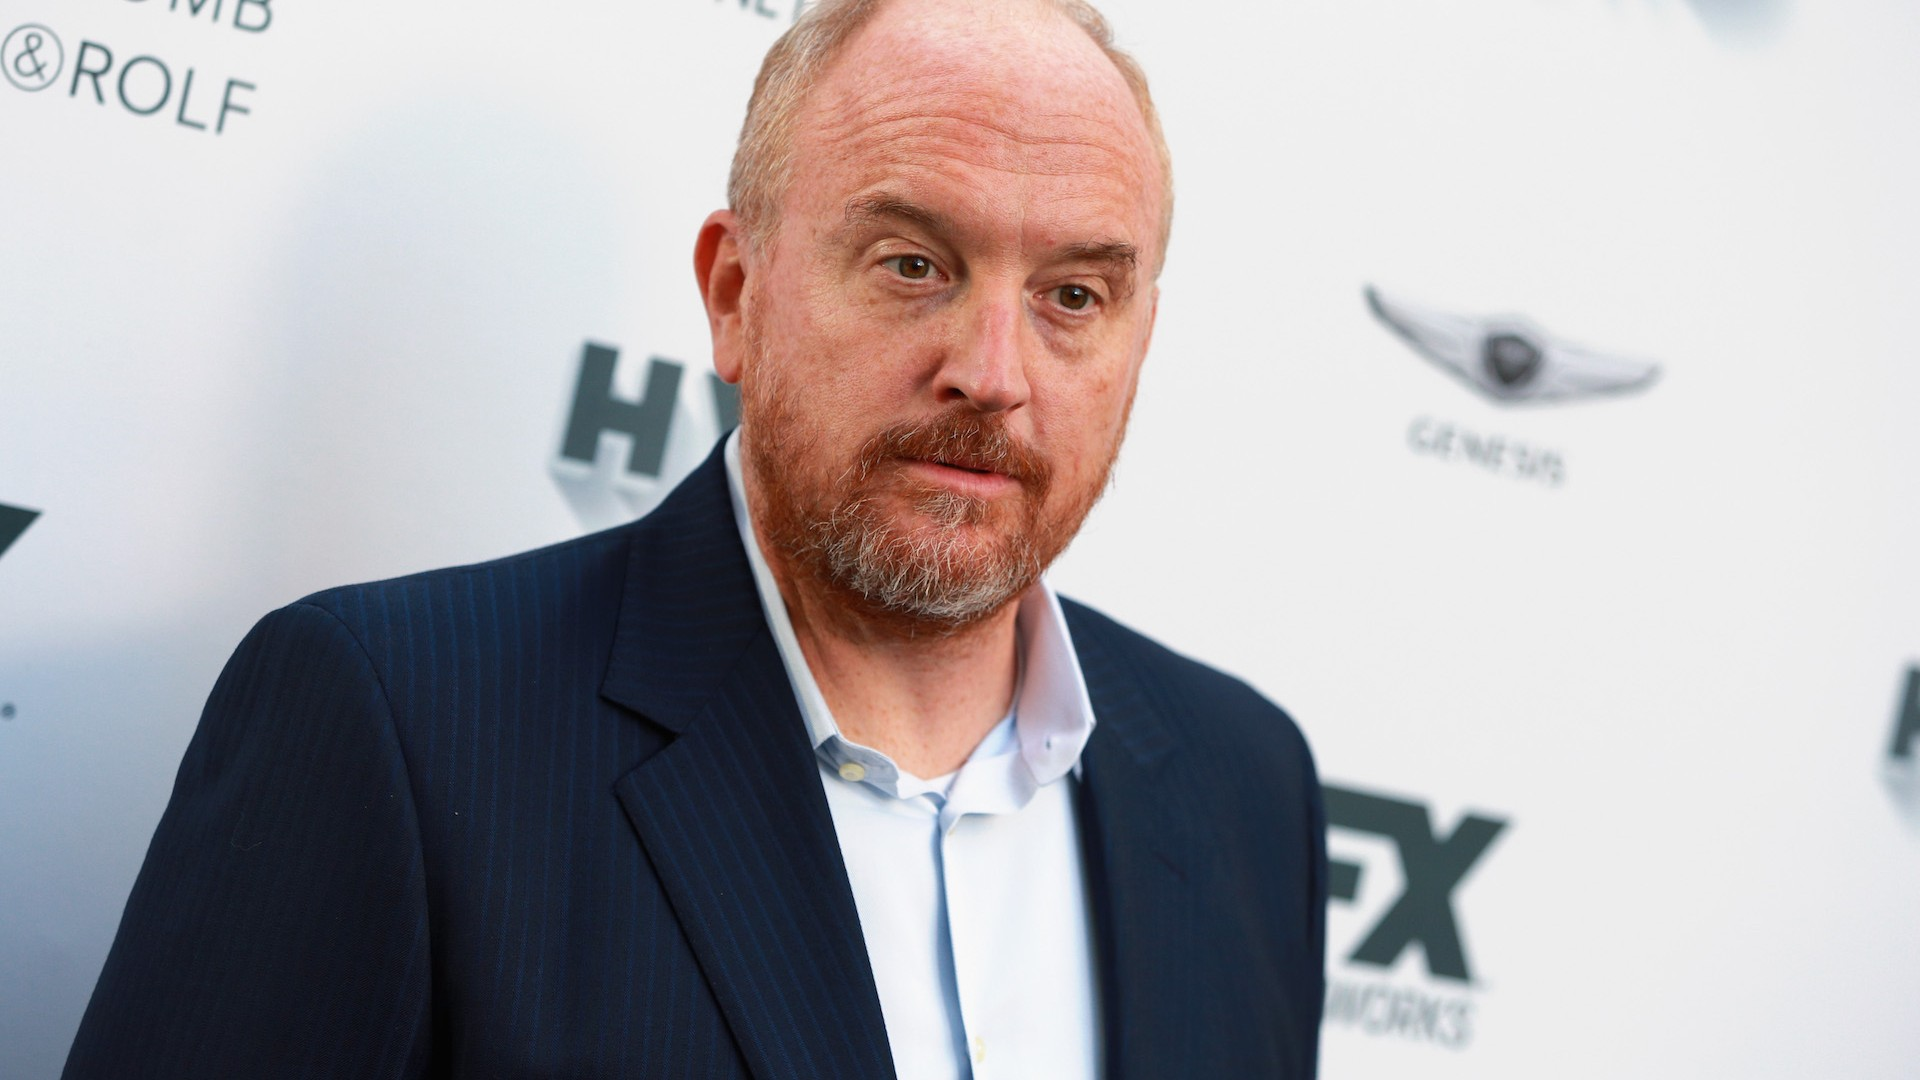 louis ck accused of masturbating in front of women without consent